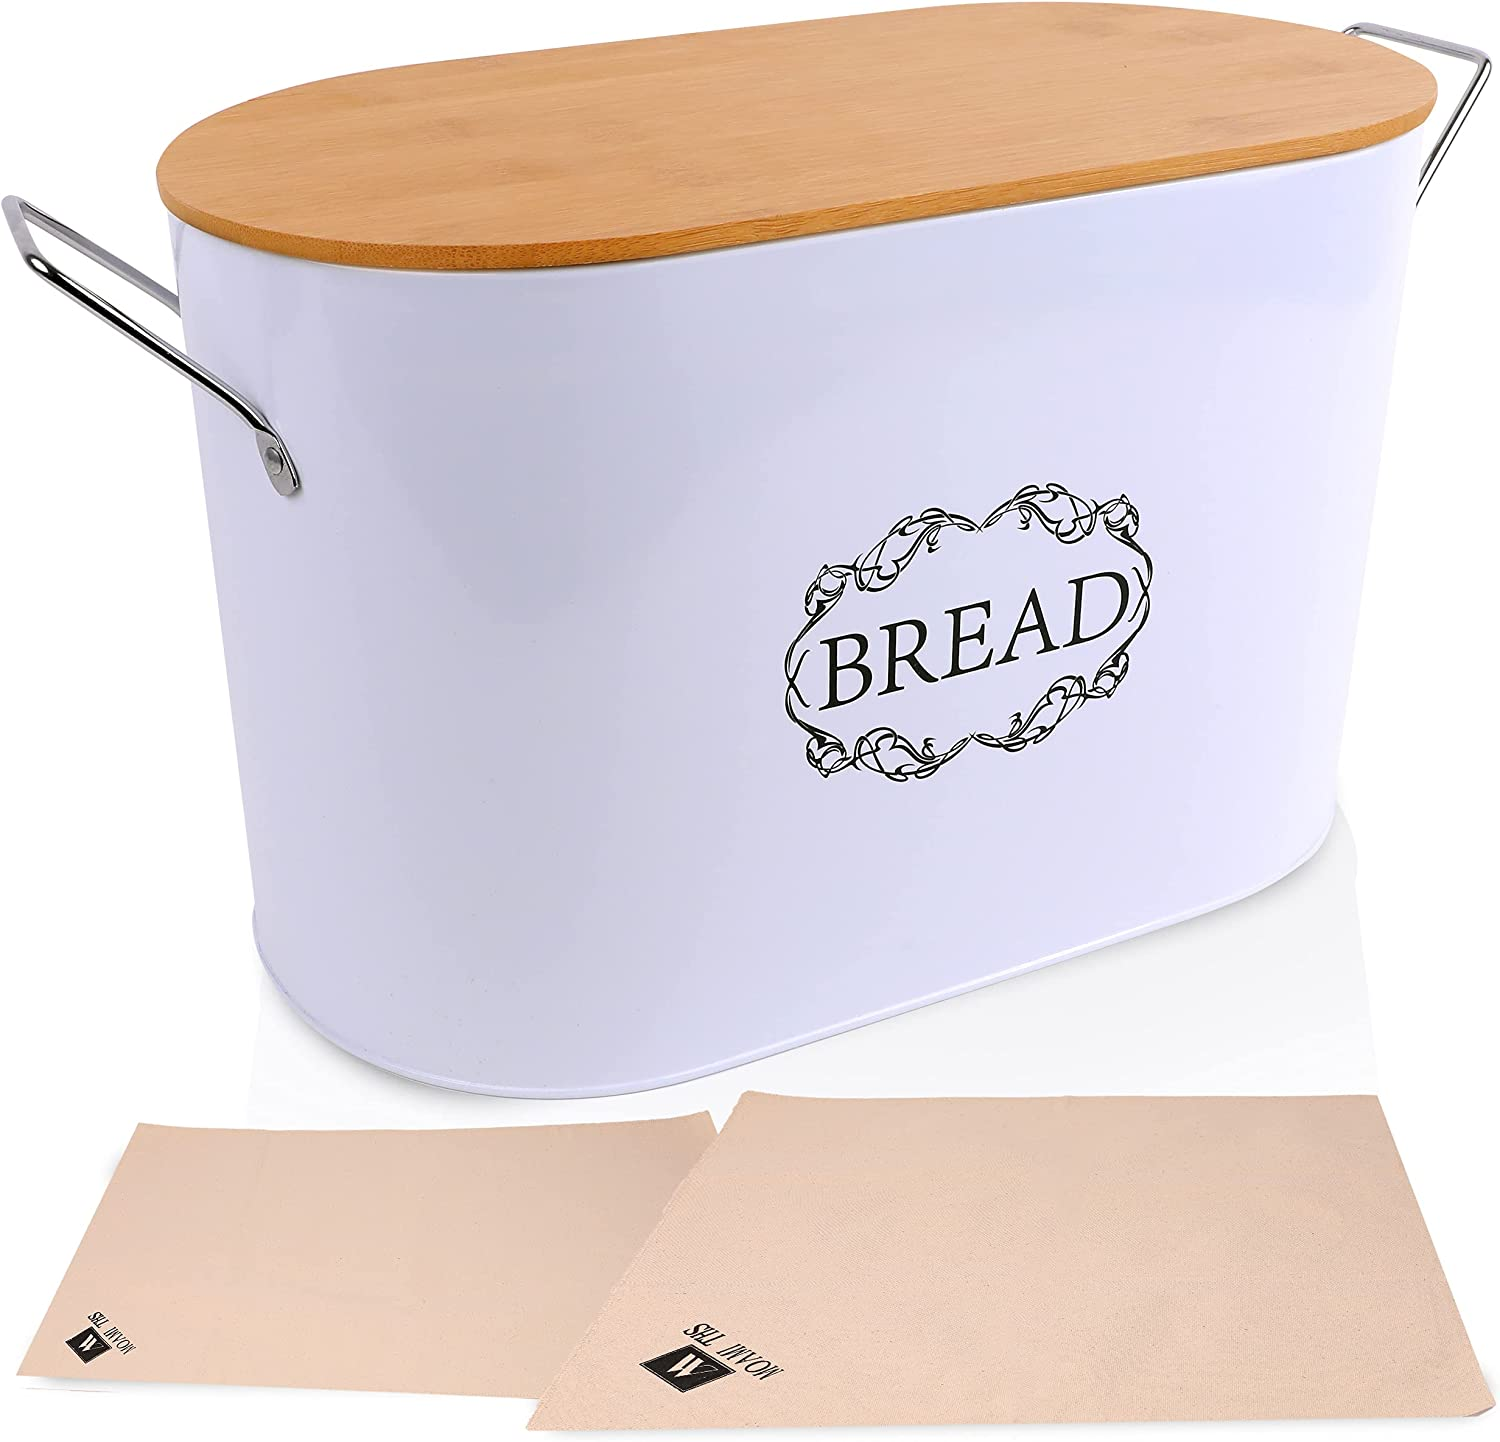 MoamiTHS Max 48% OFF Bread Box - Container with Bamboo Lid High quality Kitchen for